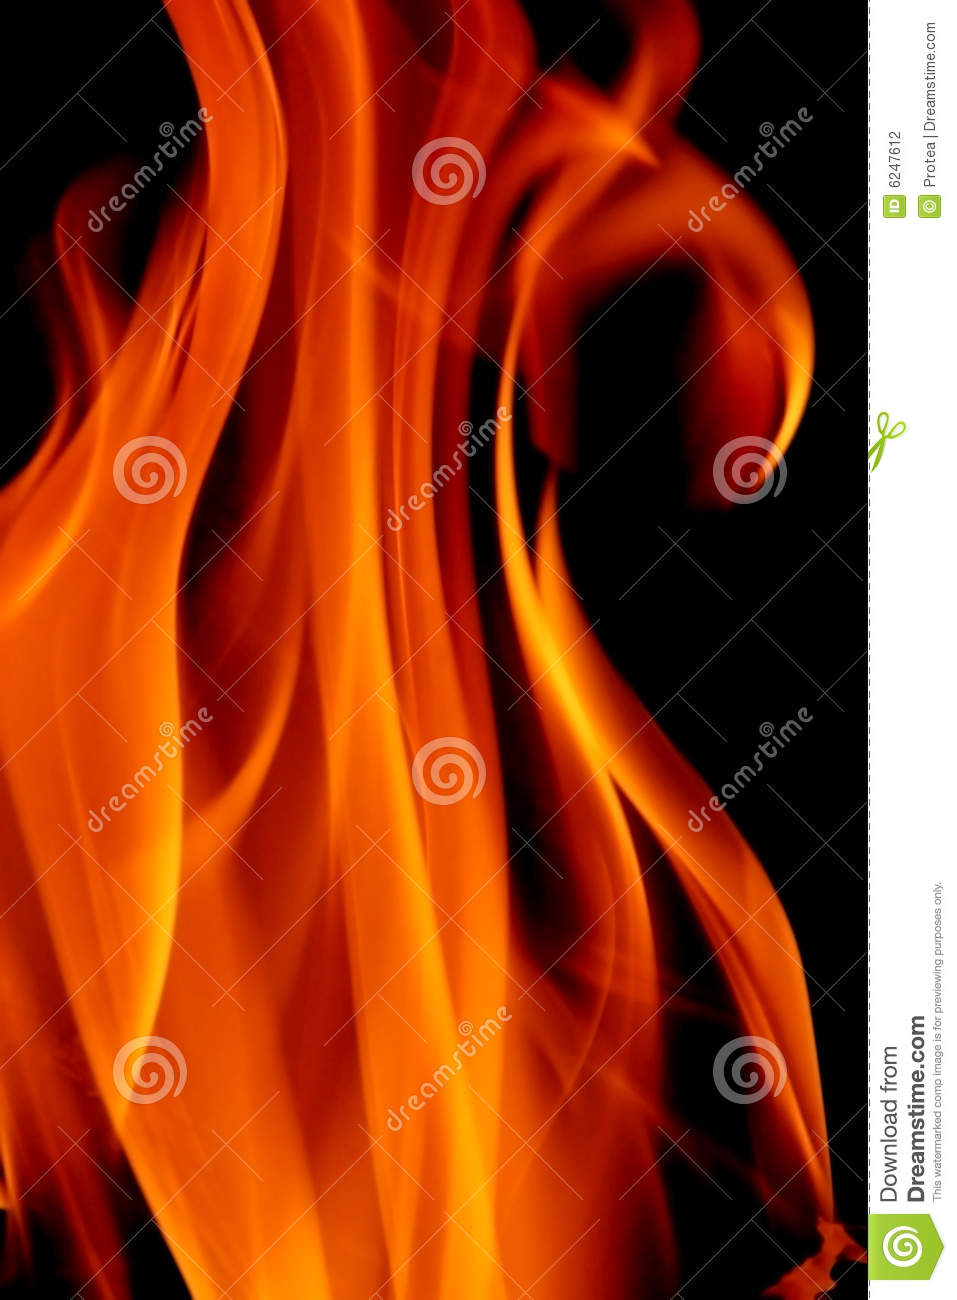 Fire, flame, texture